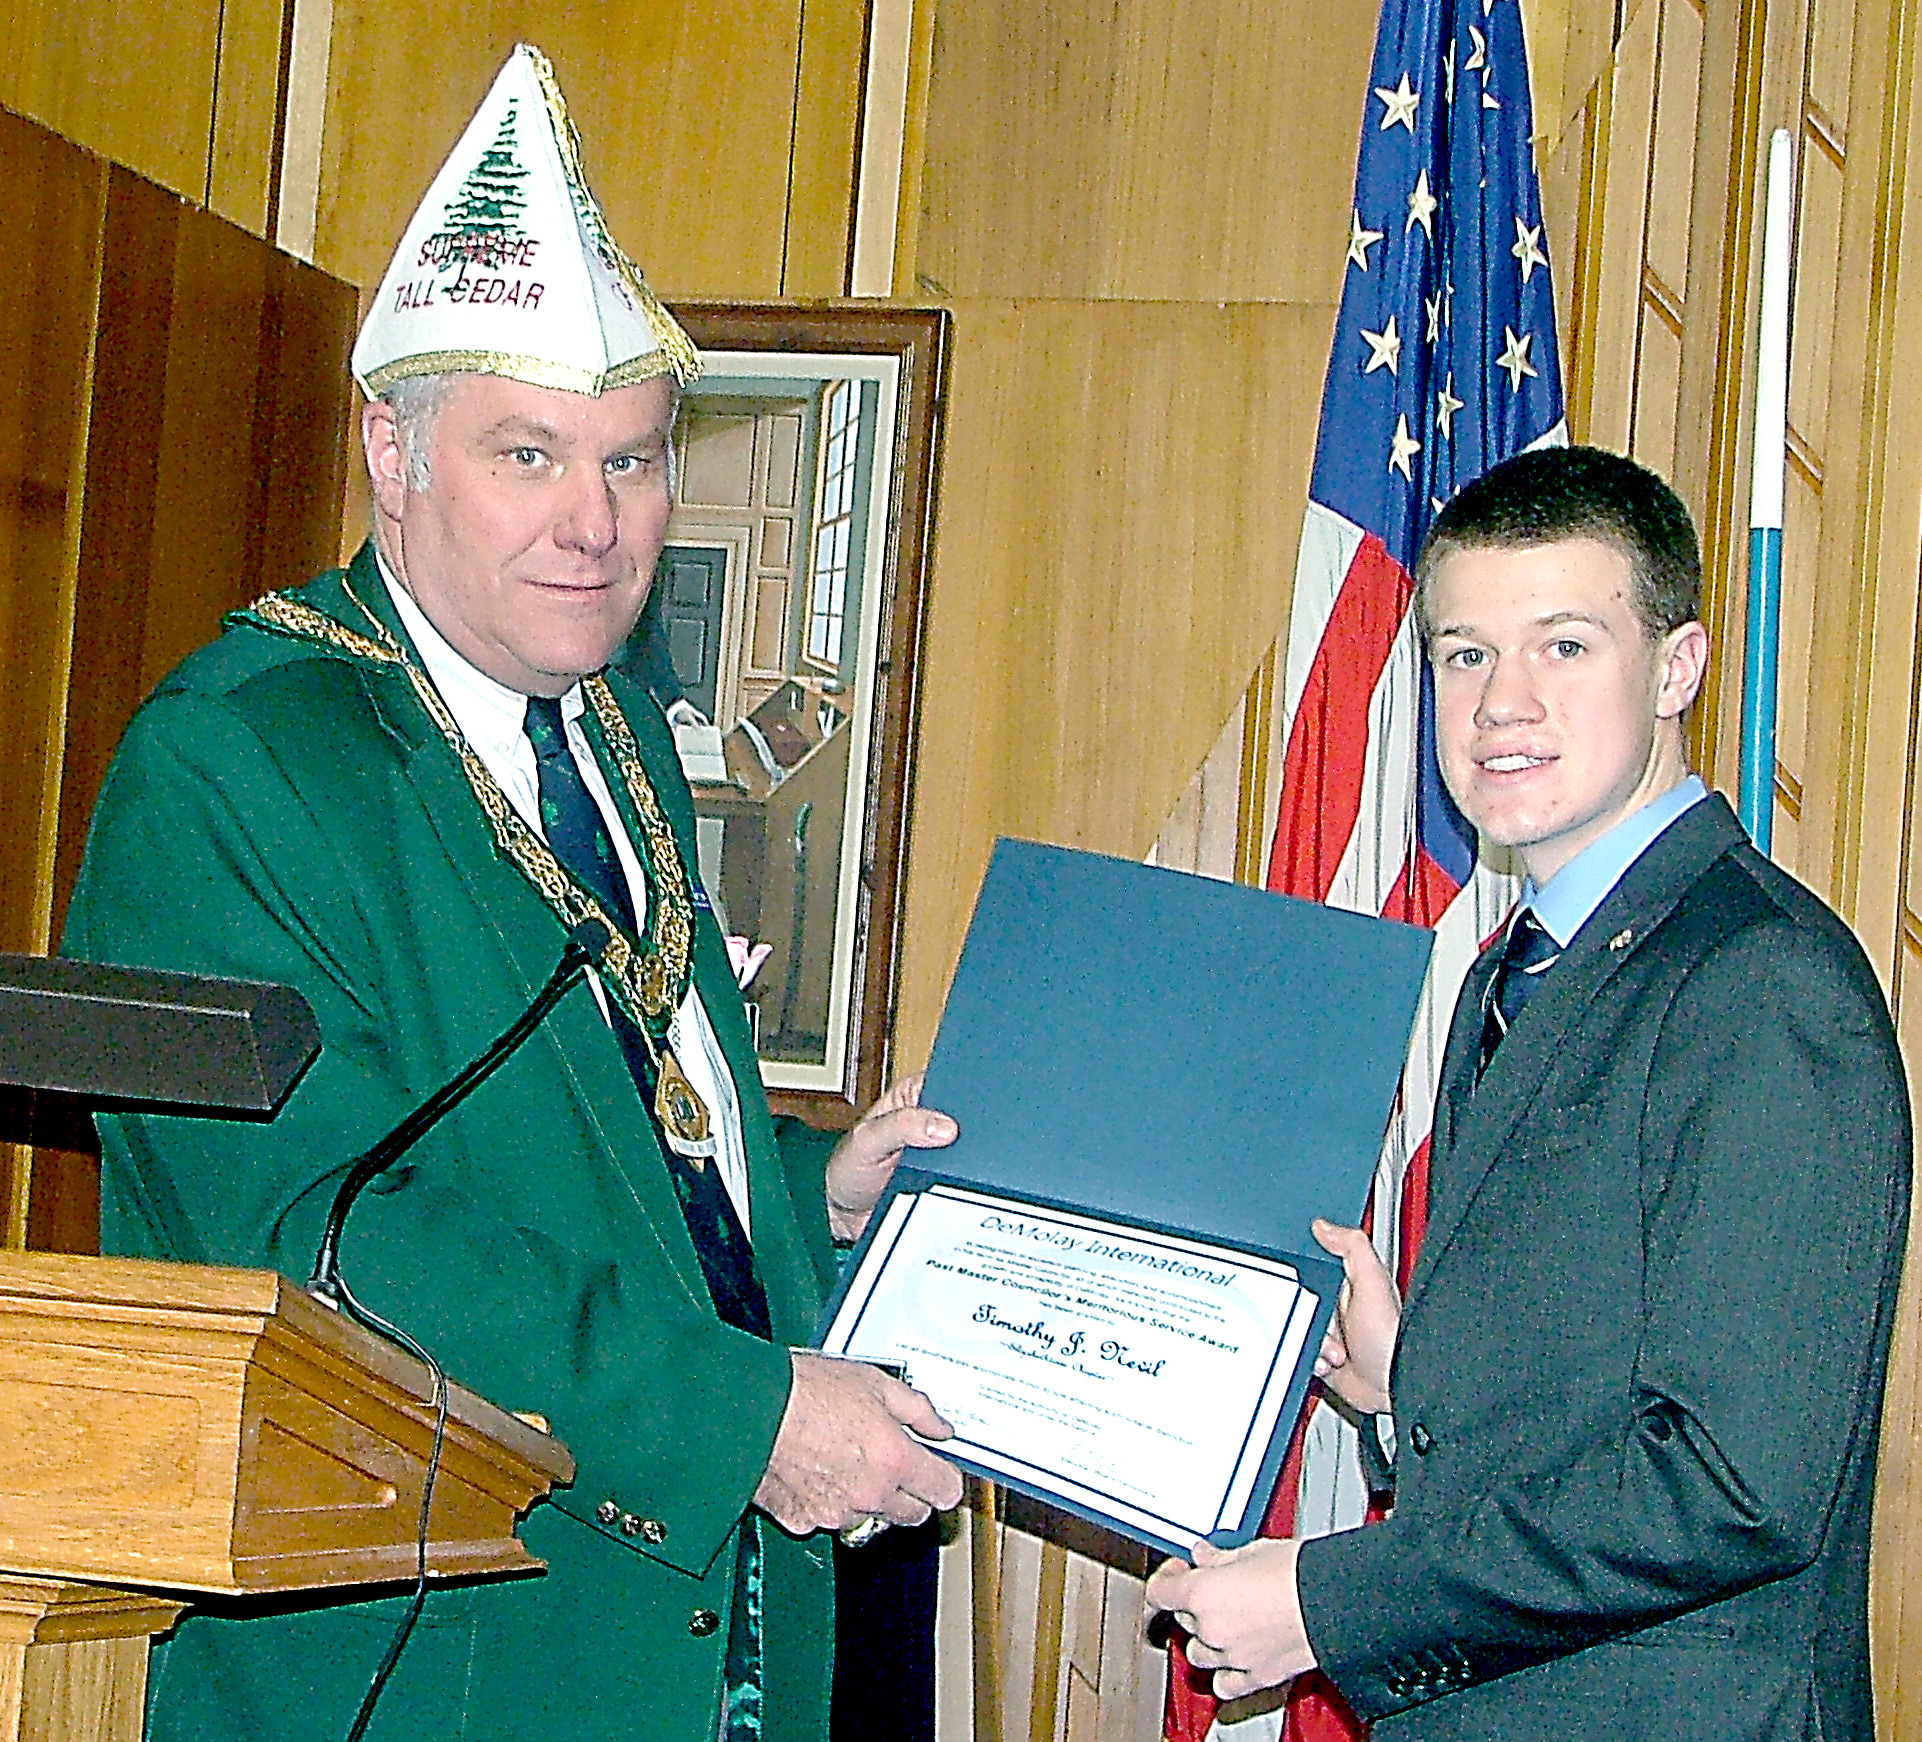 Supreme Tall Cedar Mark Brumaghim of Harrisburg presents the Past Master Councilor's Meritorious Service Award to Elizabethtown DeMolay's Past Master Councilor Timothy Nevil of Middletown.